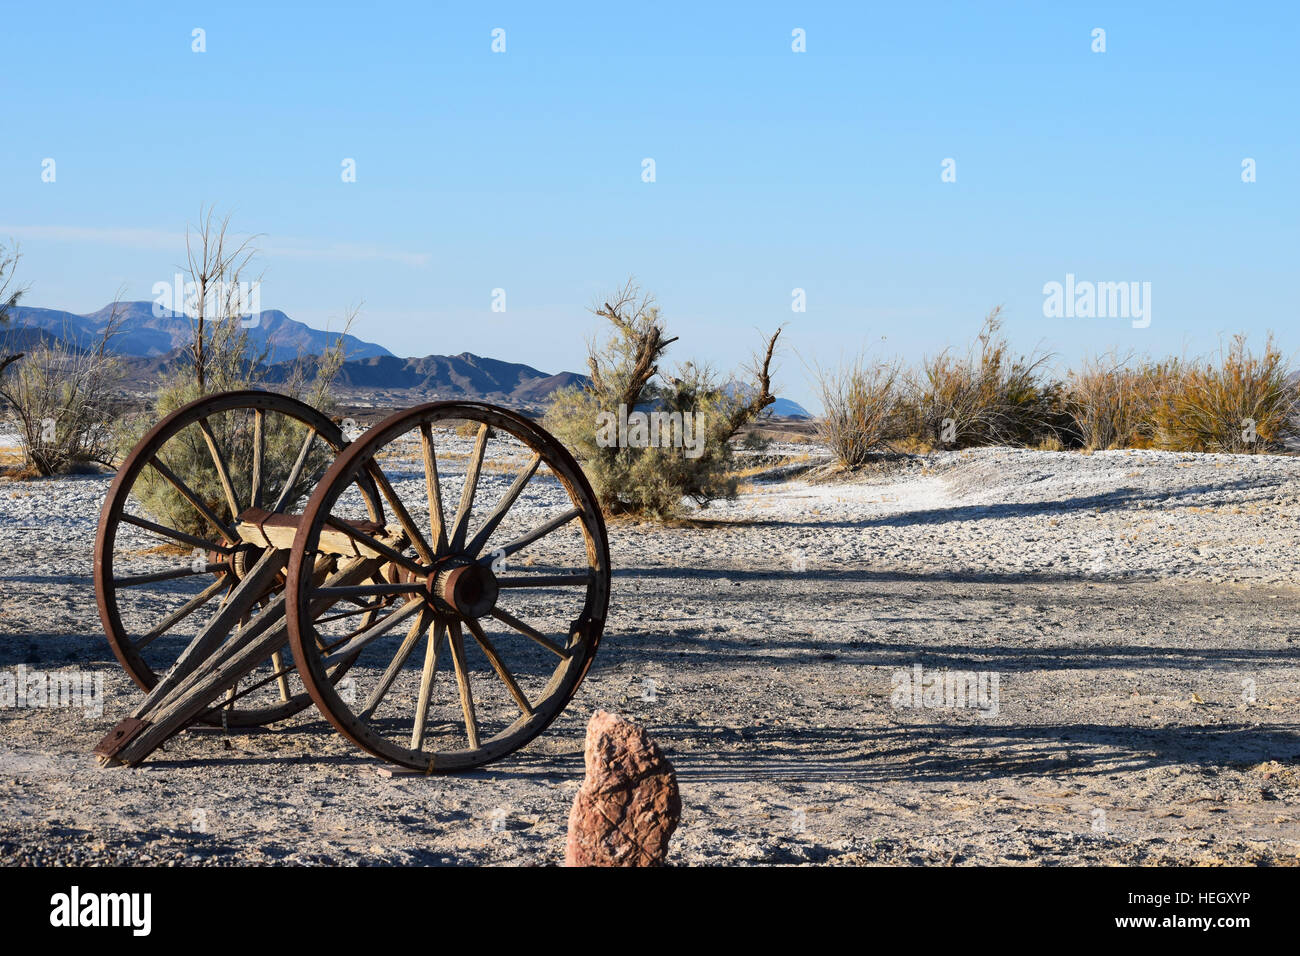 cartwheel in death valley. - Stock Image